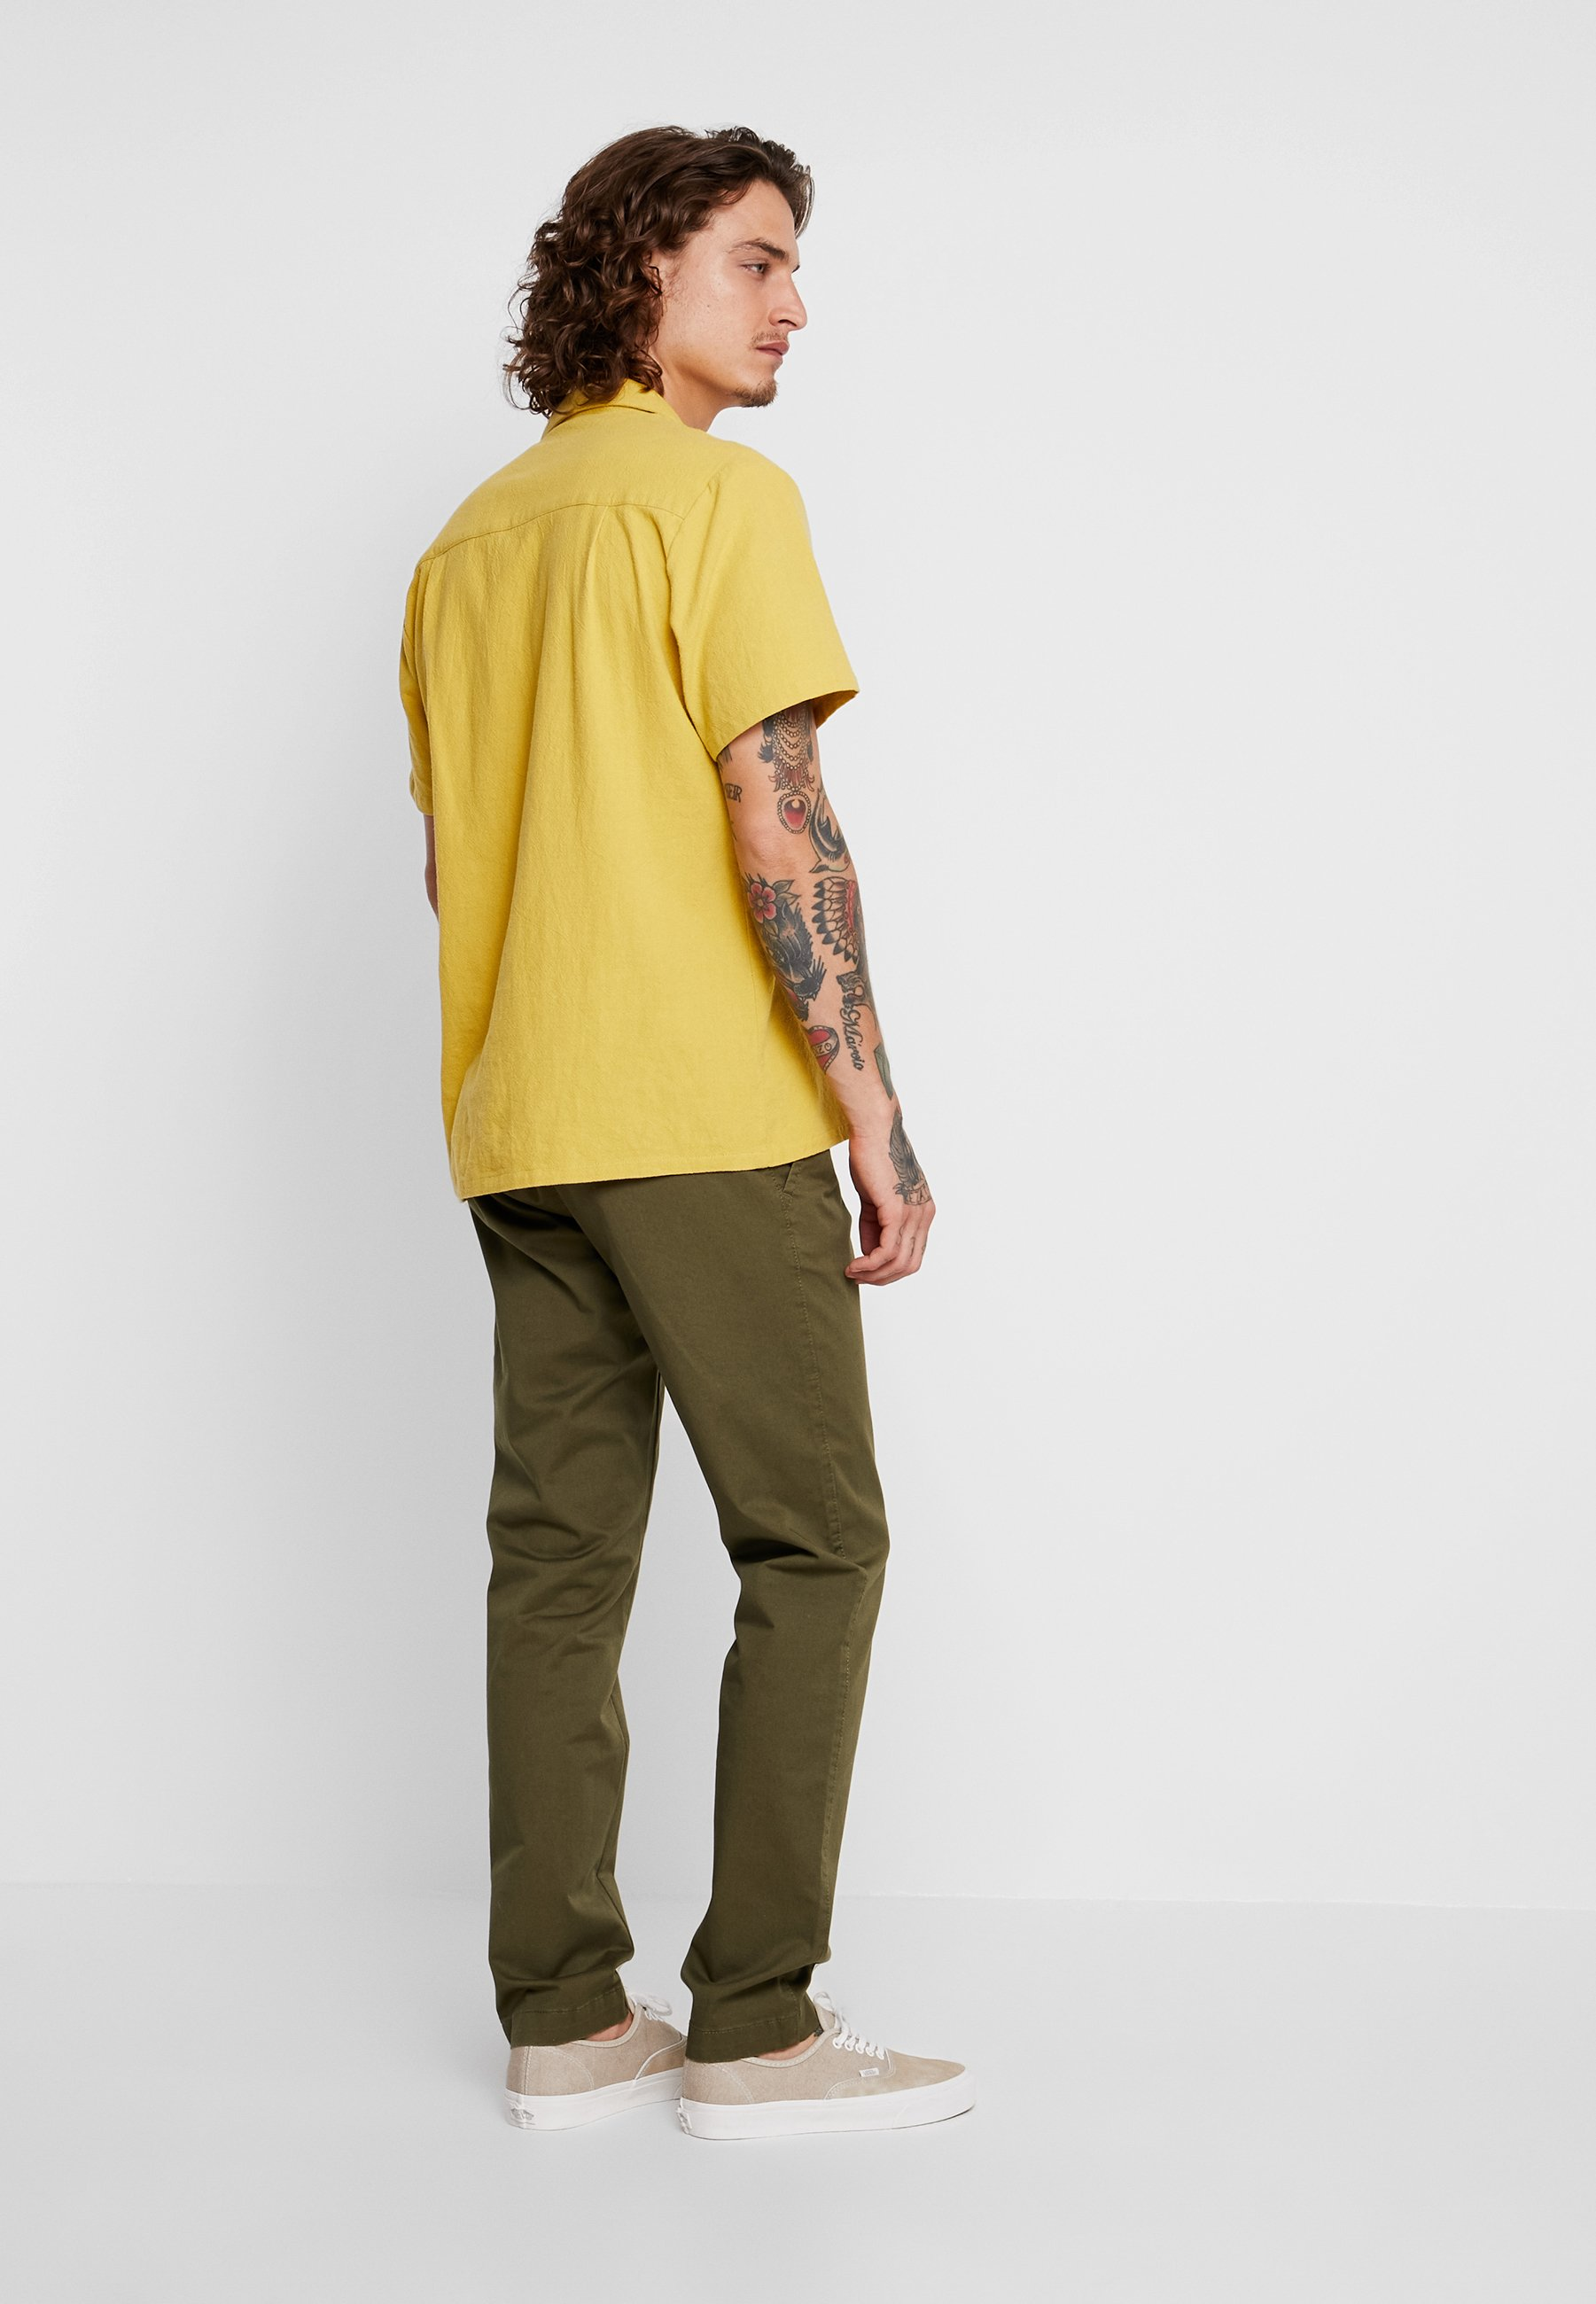 Jeans Tommy Tommy Scanton Scanton Tommy Jeans PantChino PantChino Green Green Jeans m0Nwvn8O